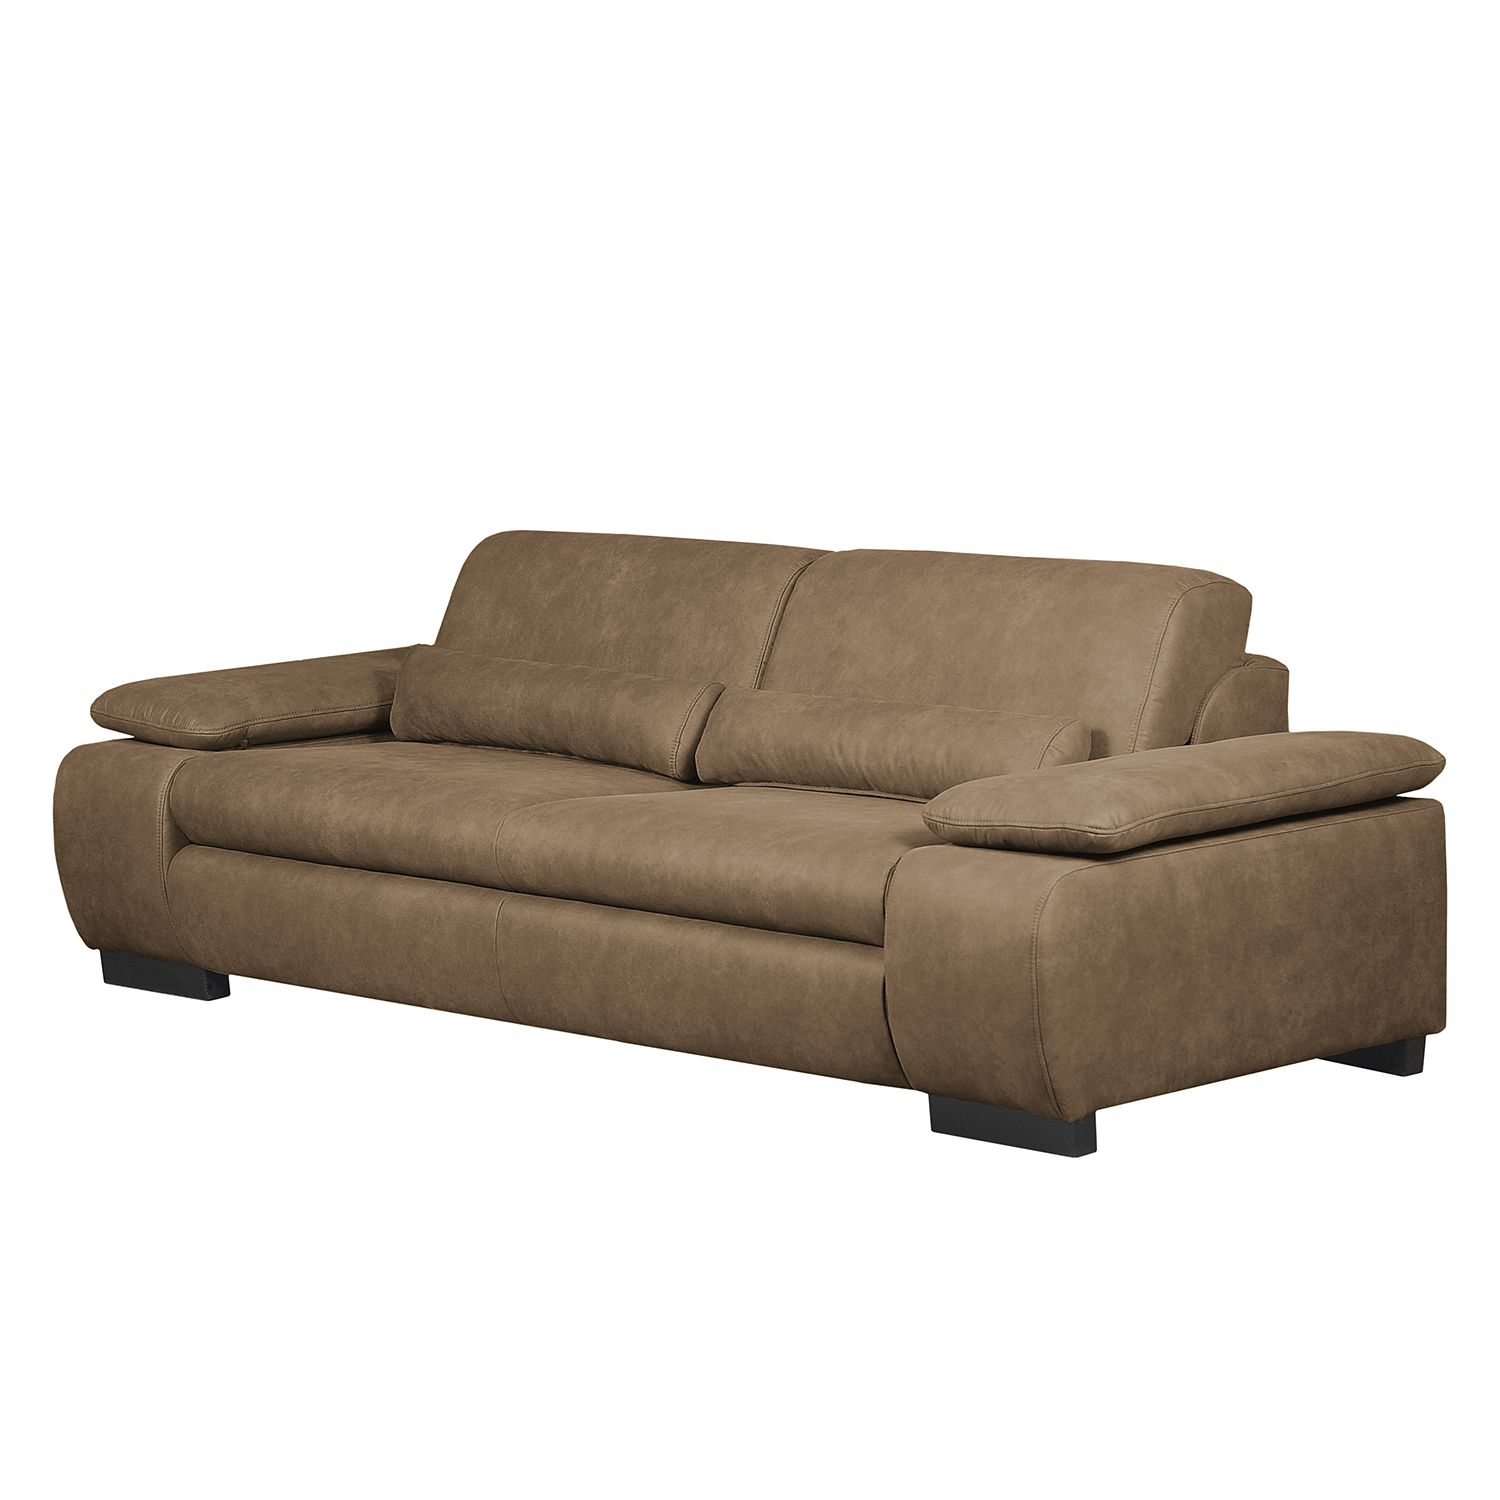 home24 Sofa Infinity (3-Sitzer) Antiklederlook